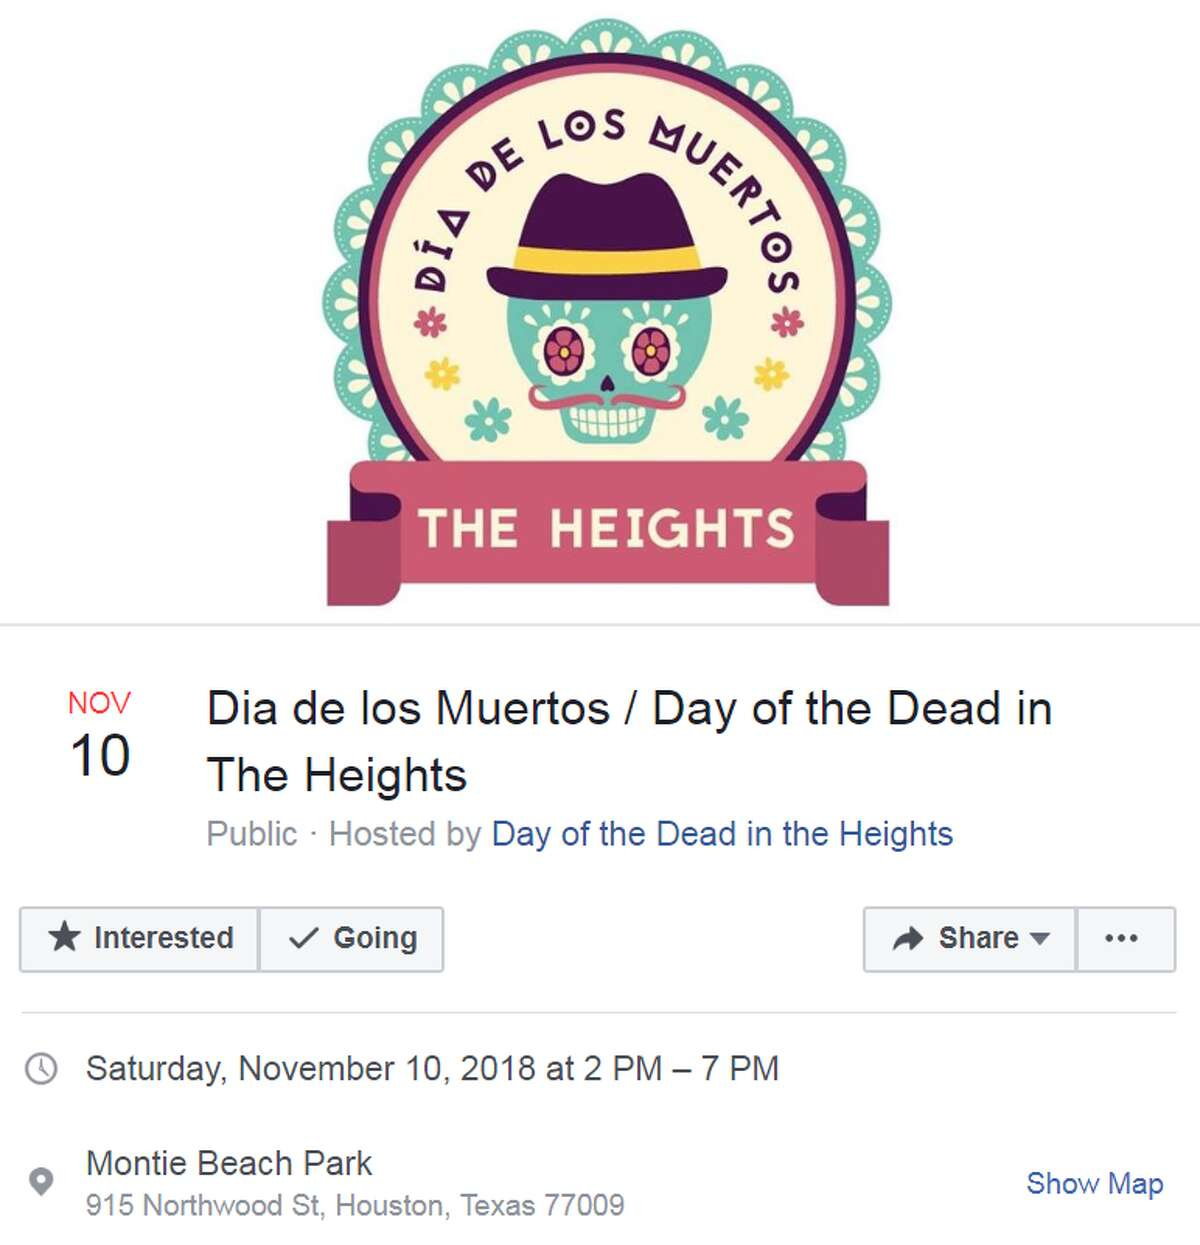 Dia de los Muertosin The Heights Nov. 10 from 2:00 - 7:00 p.m. Montie Beach Park Hosted by Day of the Dead in the Heights More info